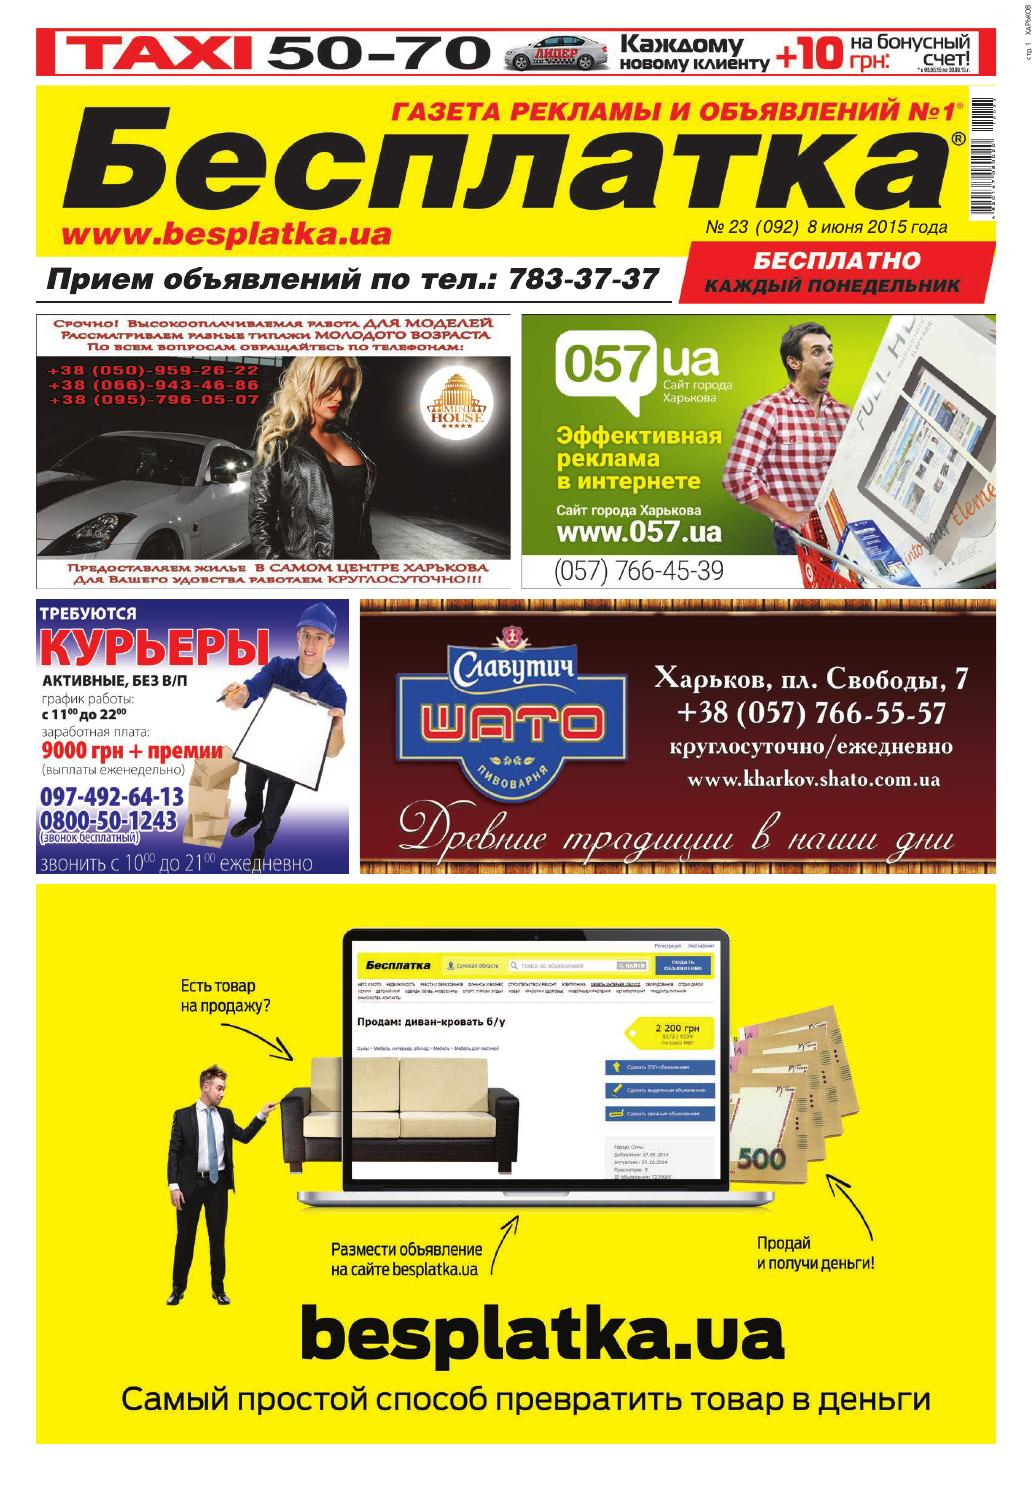 Besplatka №23 Харьков 08.06.15 by besplatka ukraine - issuu 6cf5ccf351ad7